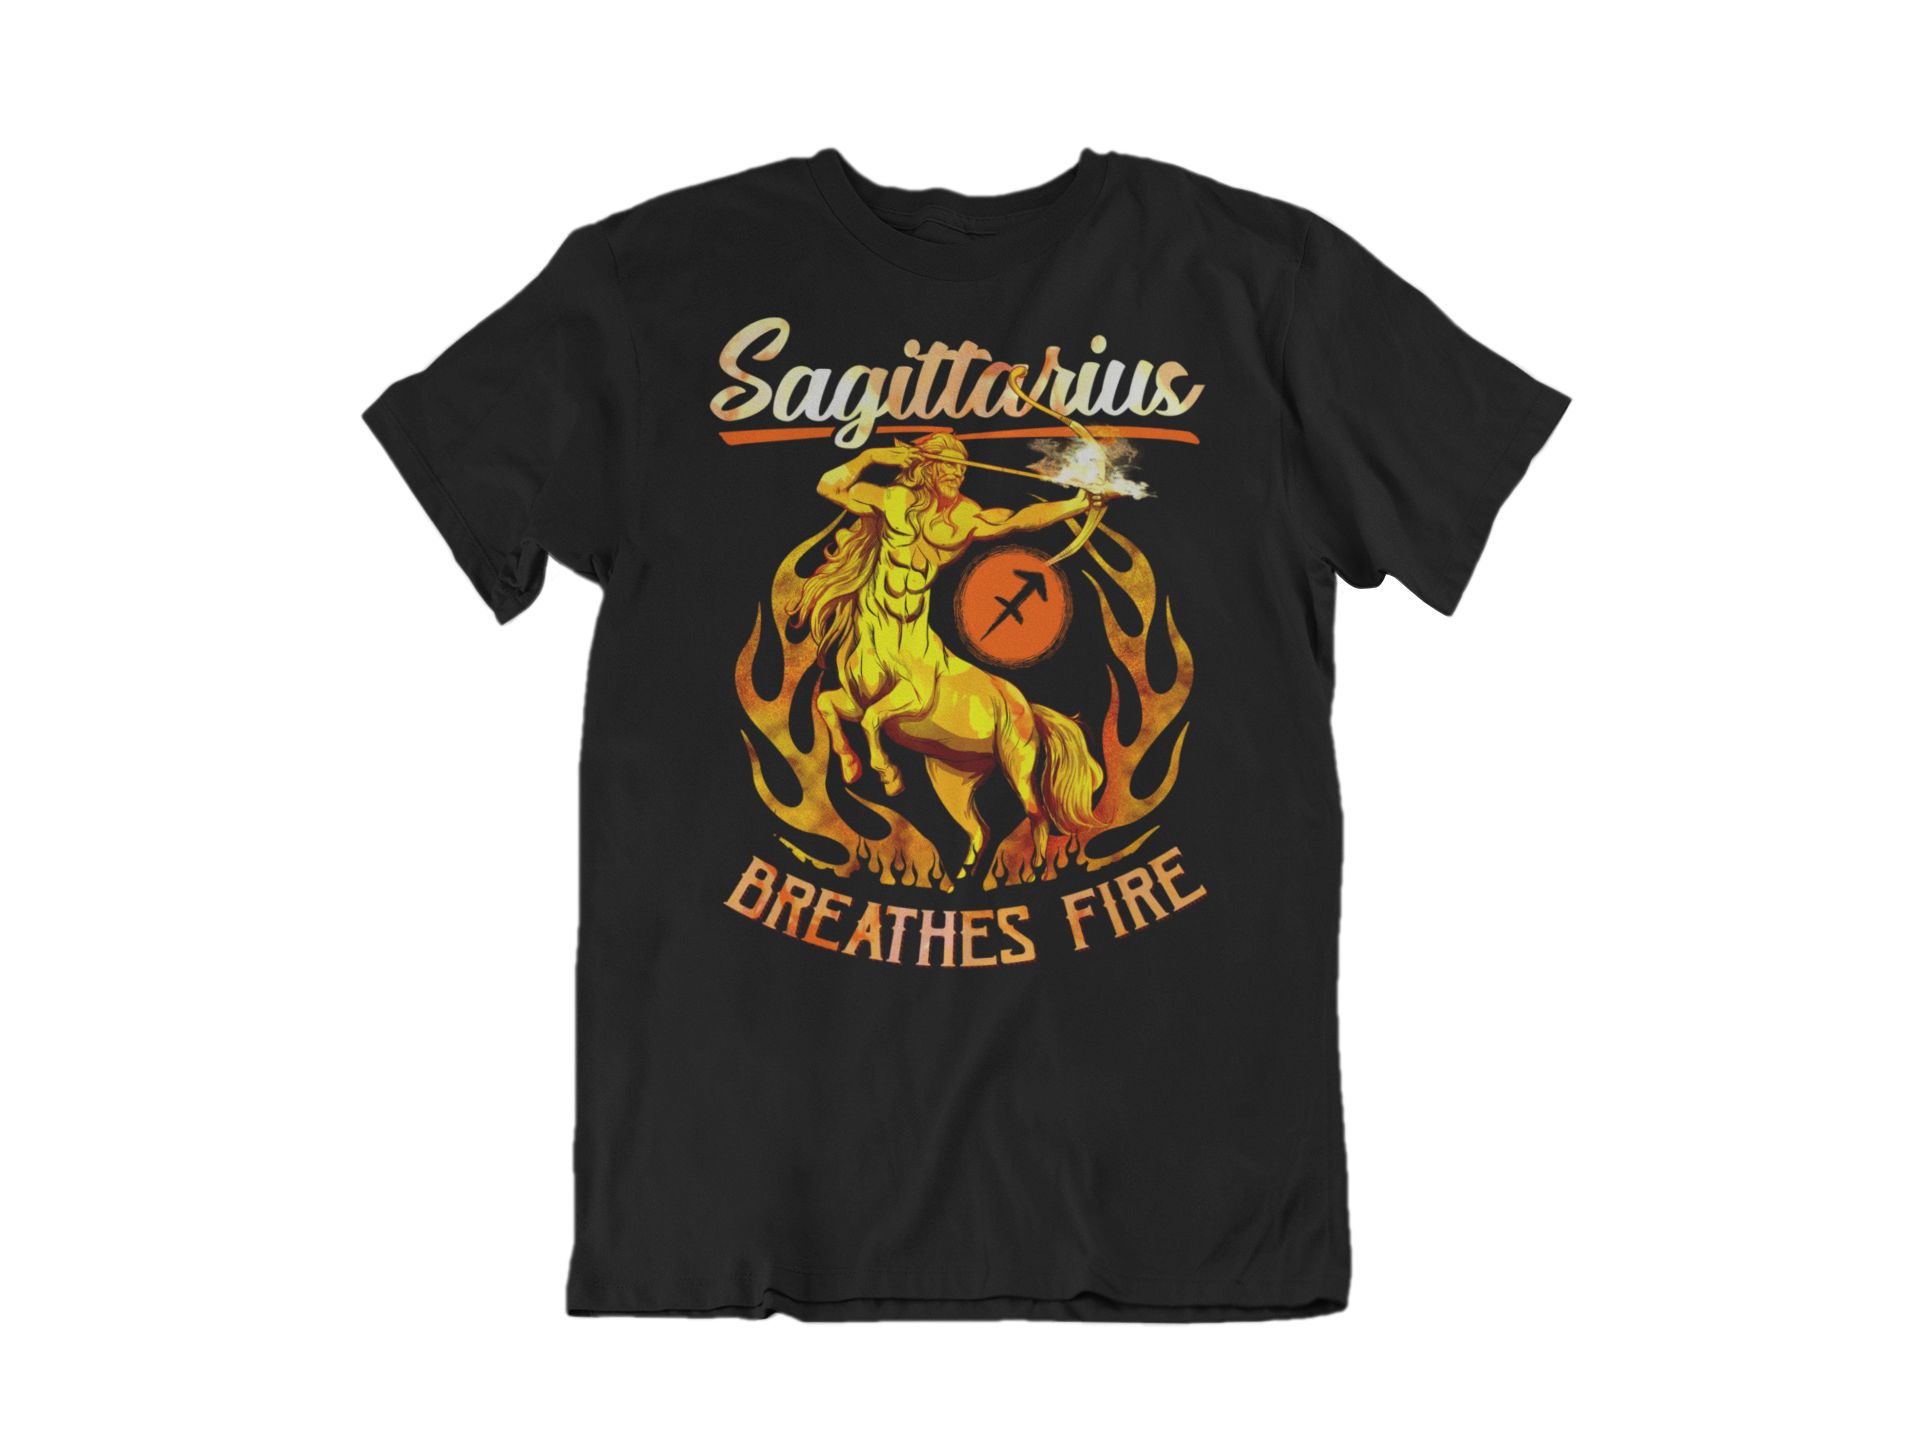 Sagittarius Breathes Fire